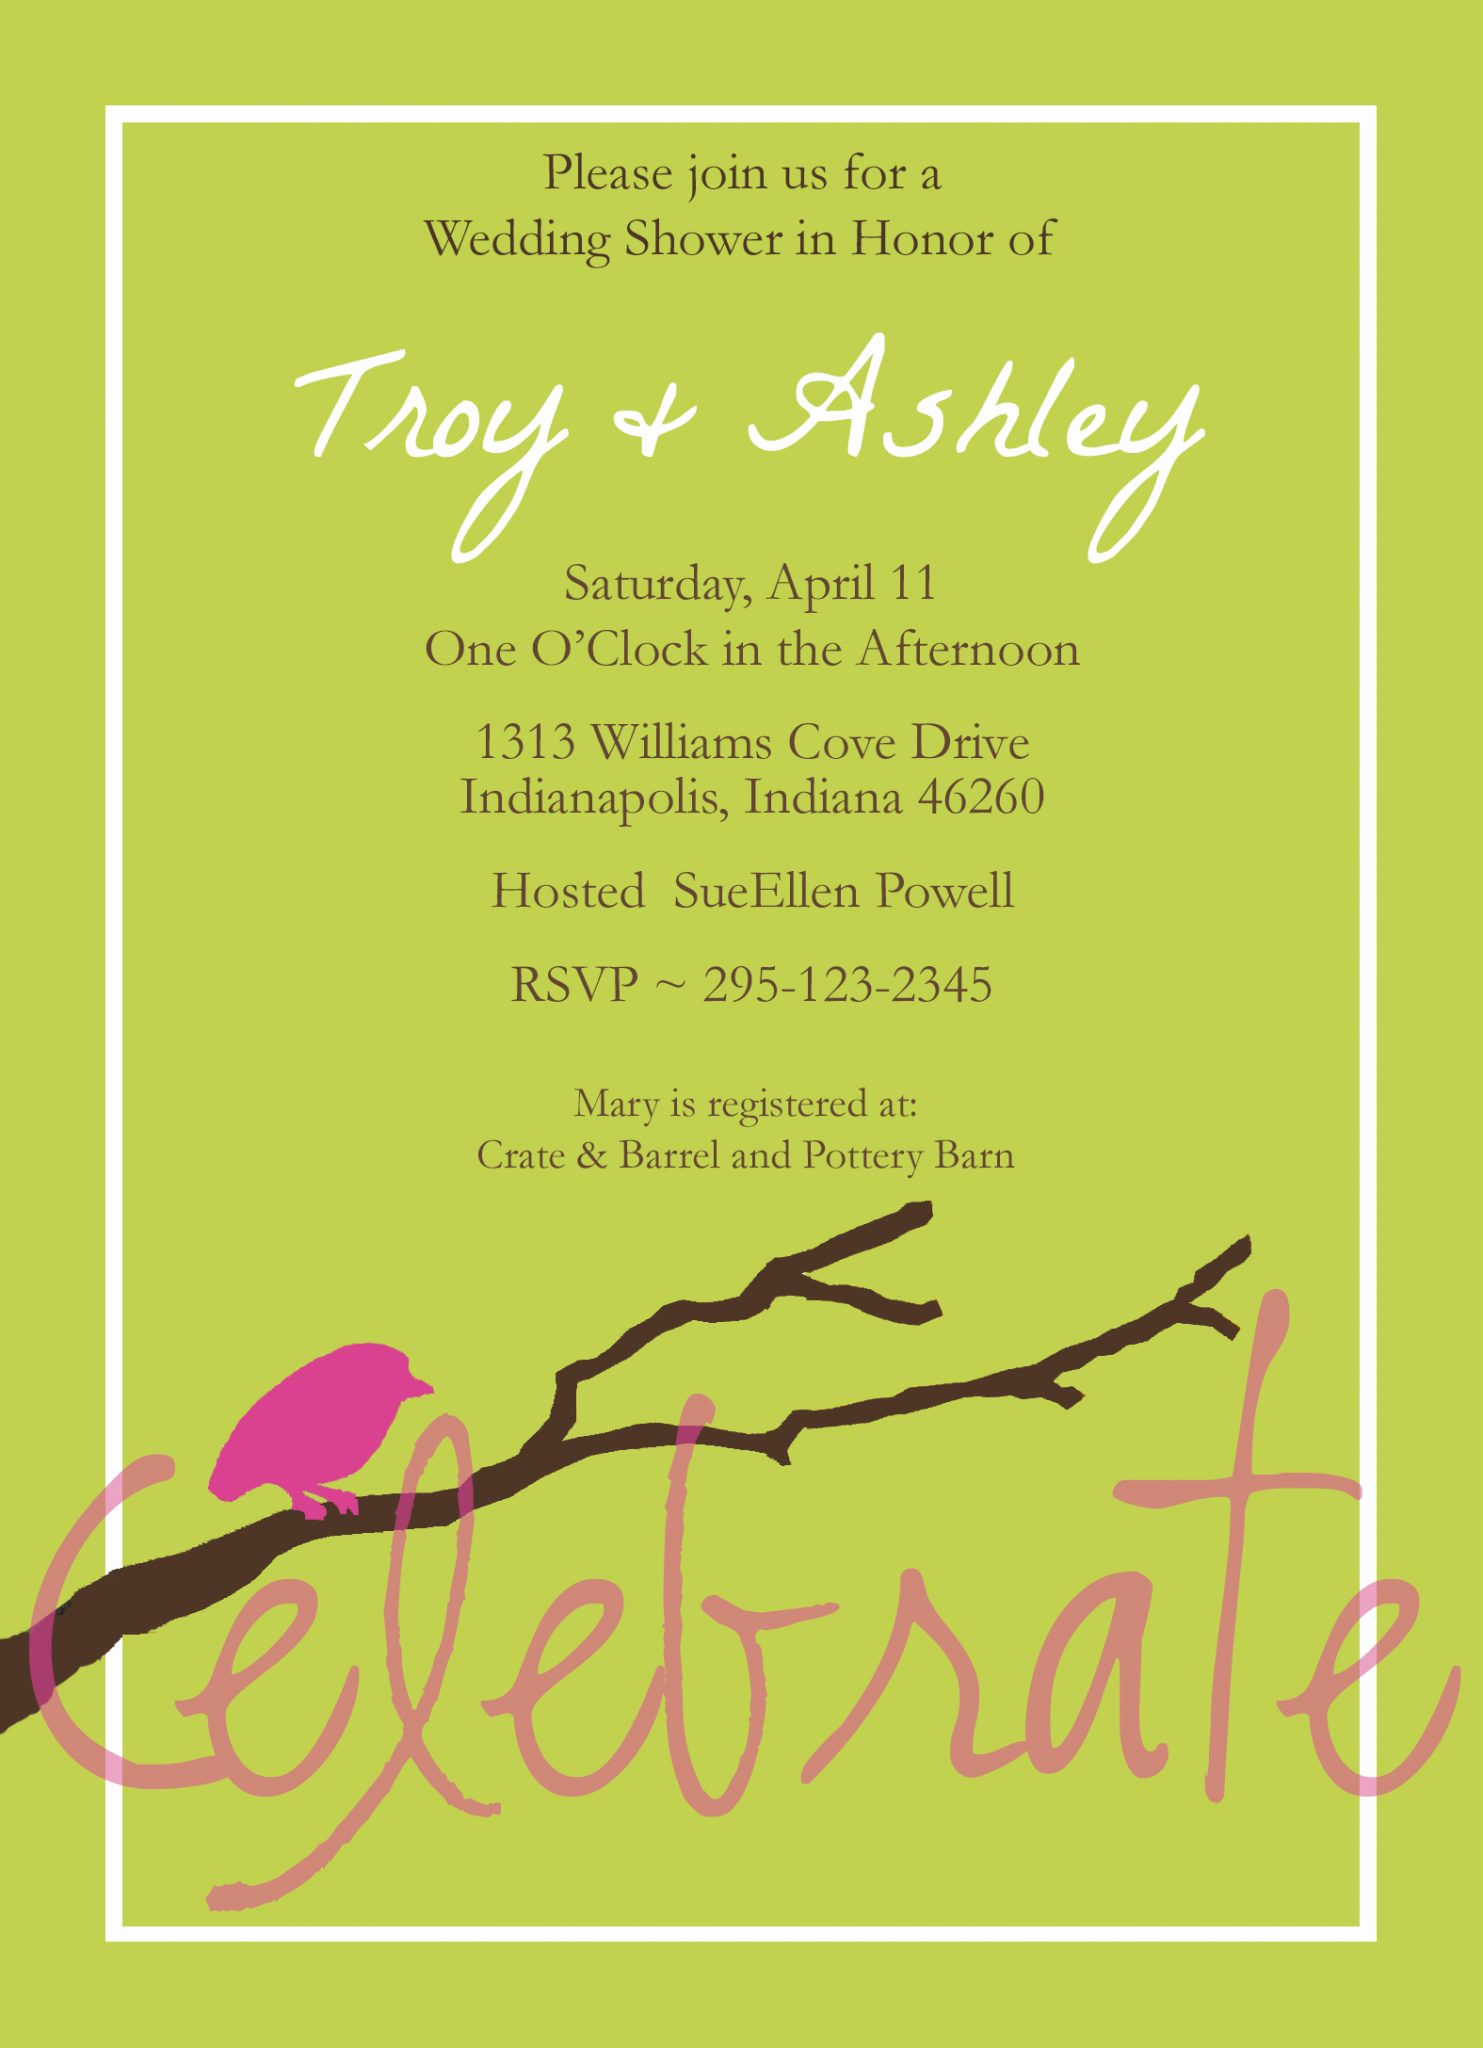 Free Bridal Shower Invitations Unique Free Customizable Bridal Shower Invitations